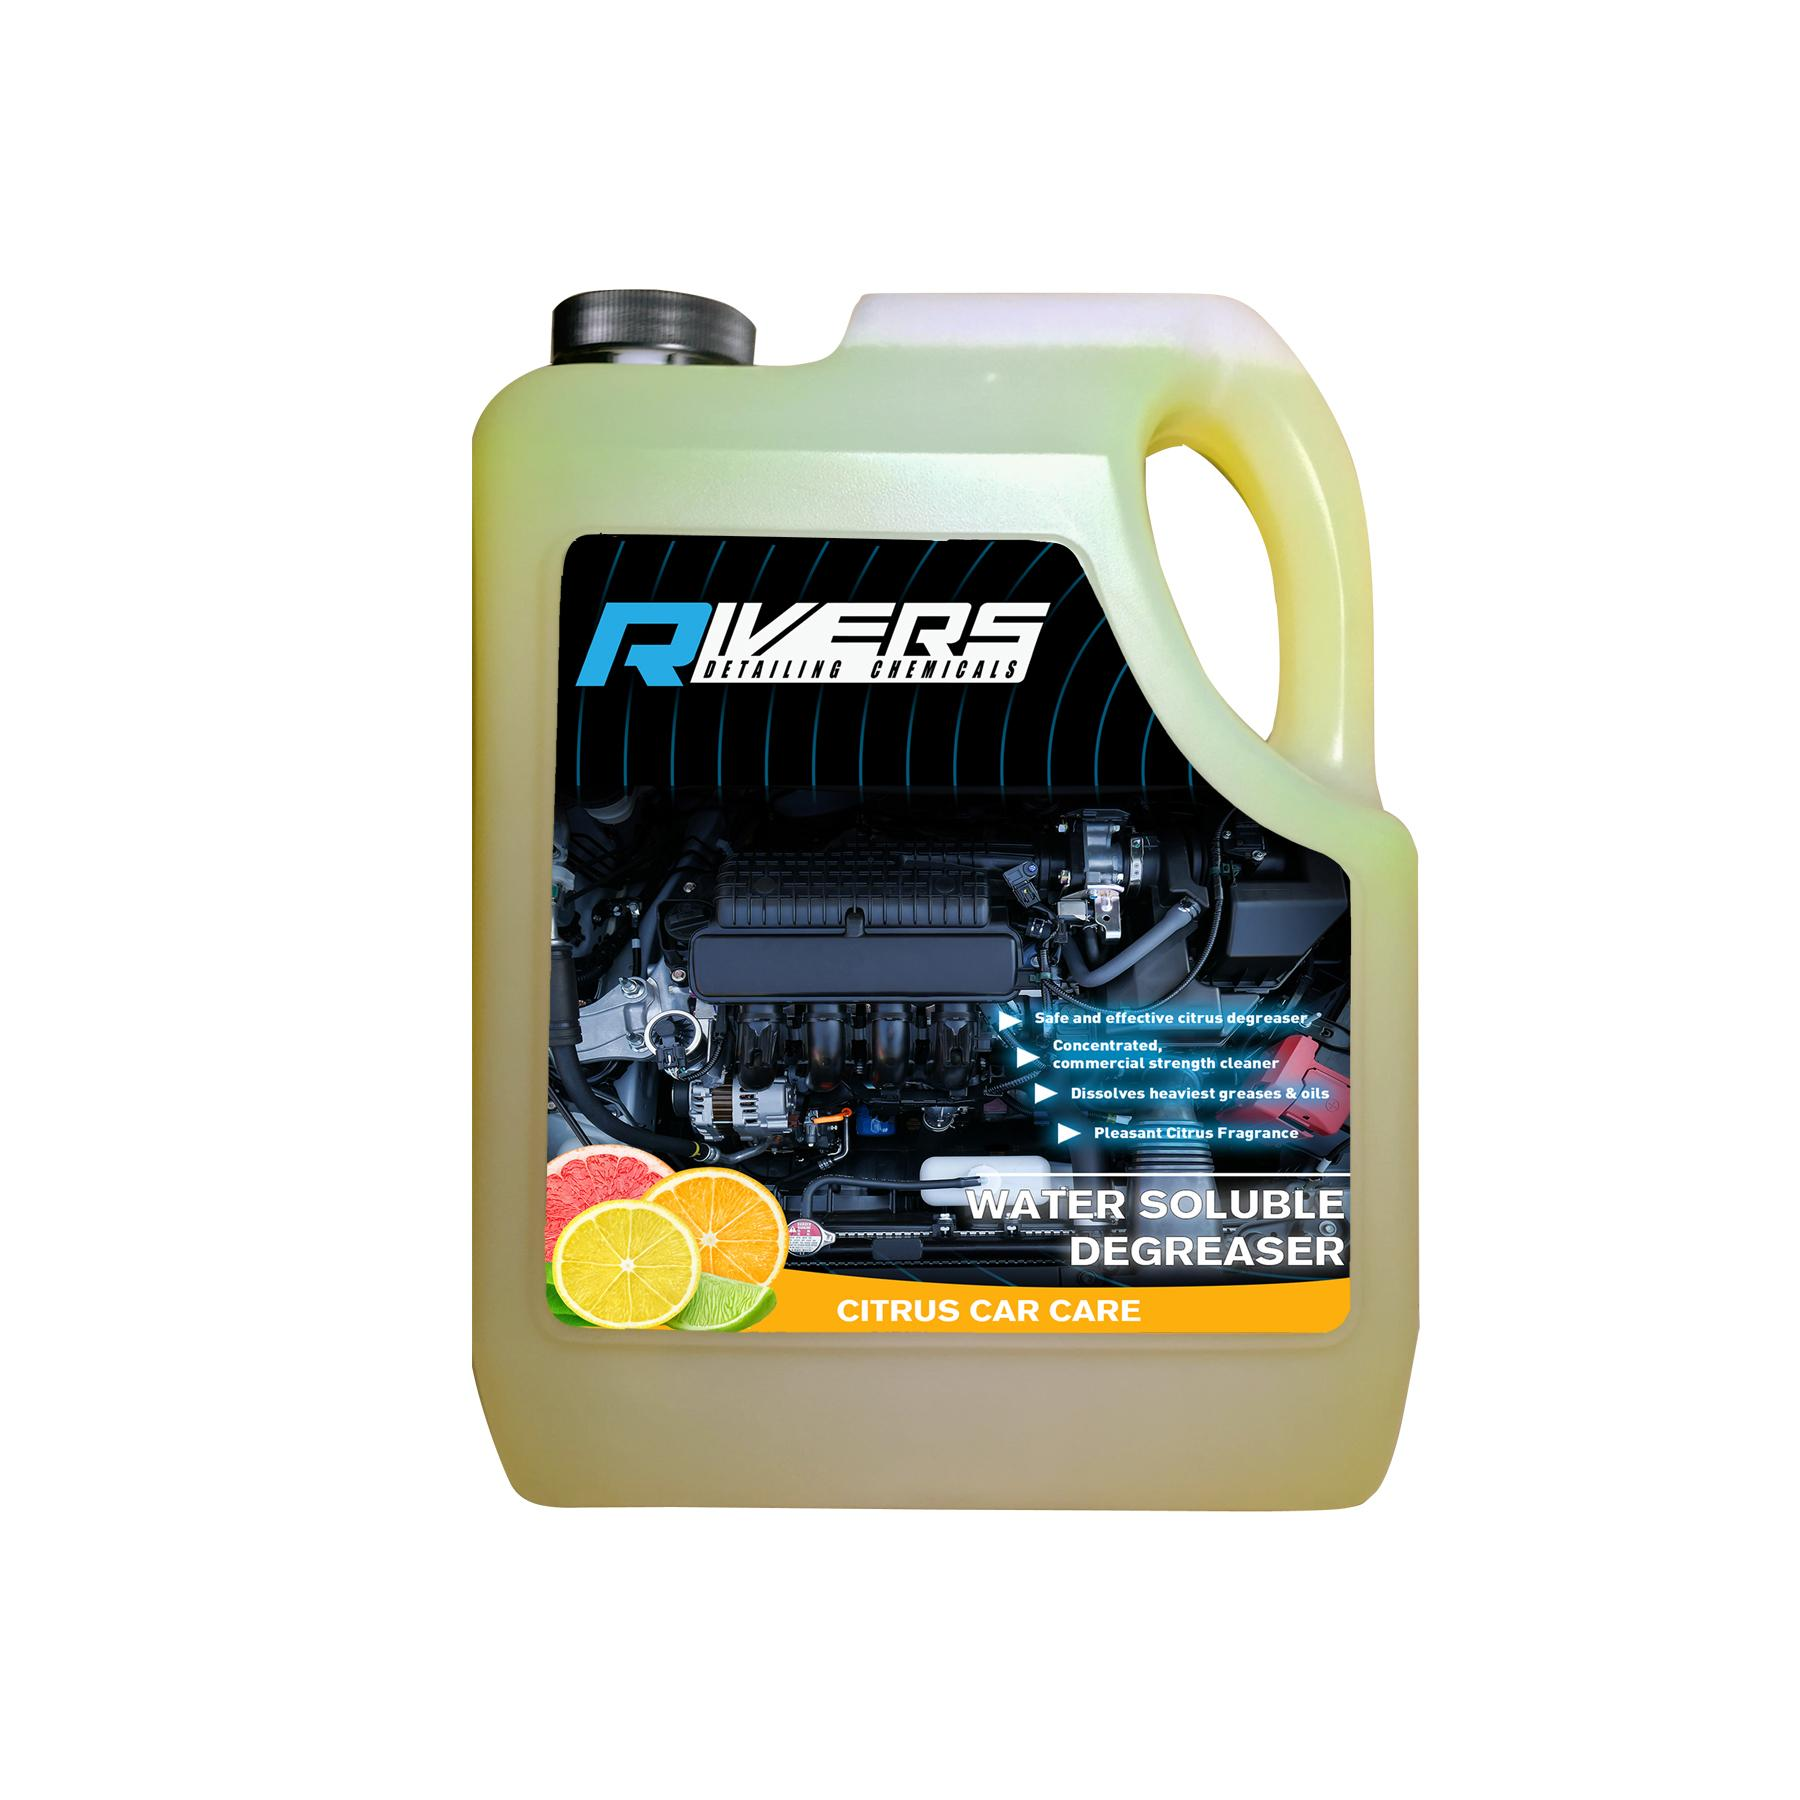 Rivers Water Soluble Degreaser 1 Gal. (4 Liters) By Rivers..